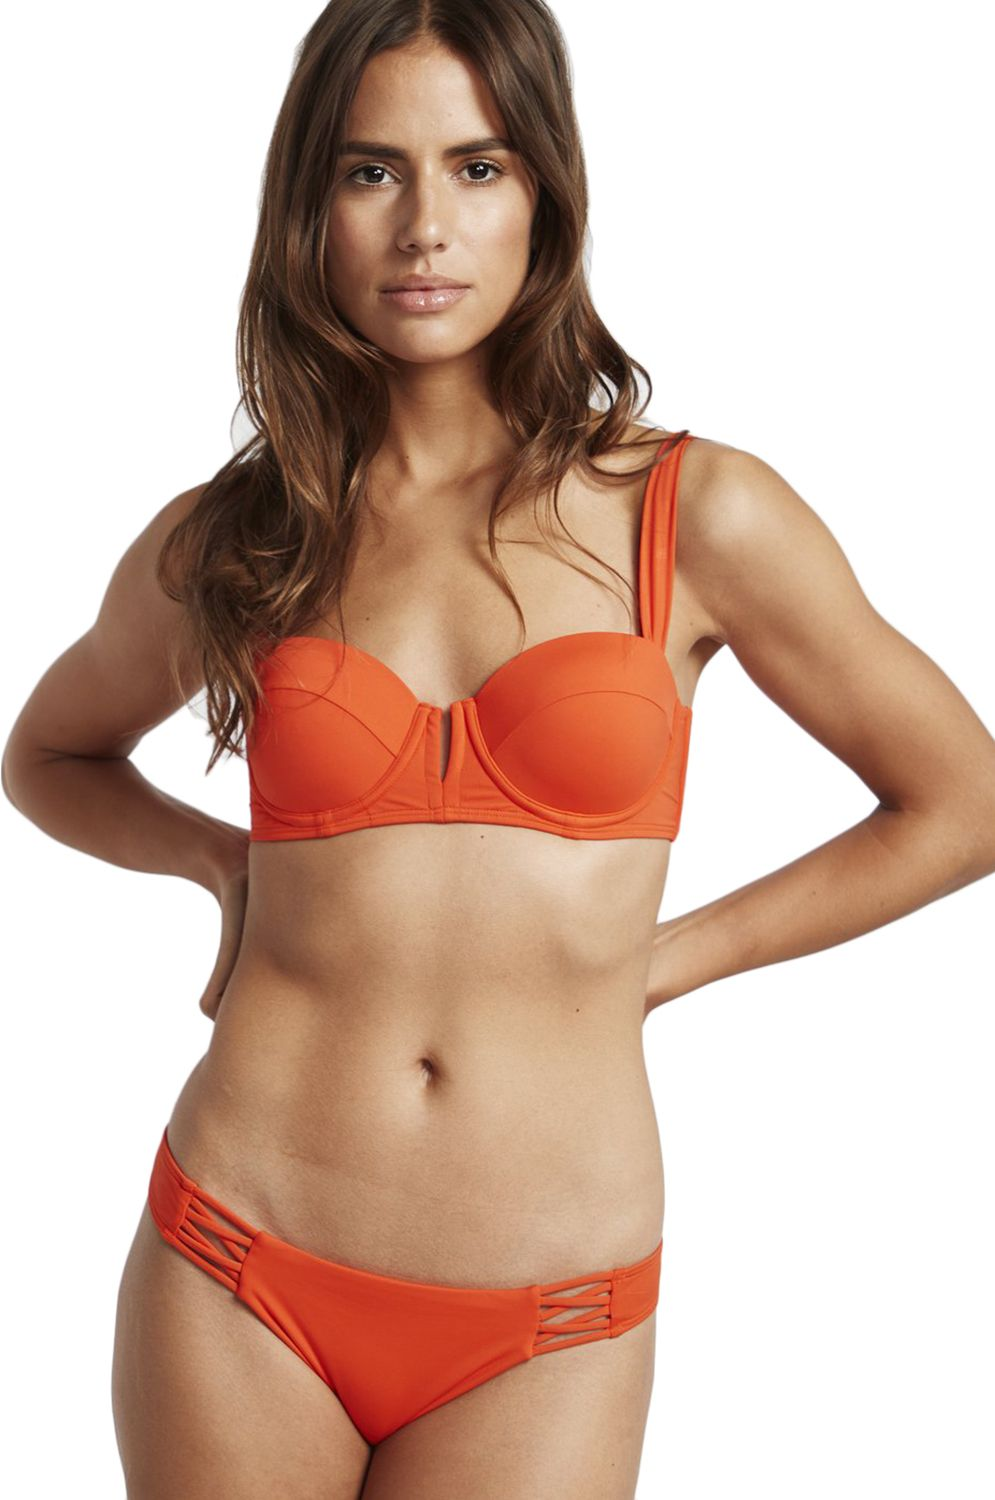 Billabong Bikini Top MIAMI UNDERWIRE SOL SEARCHER Samba